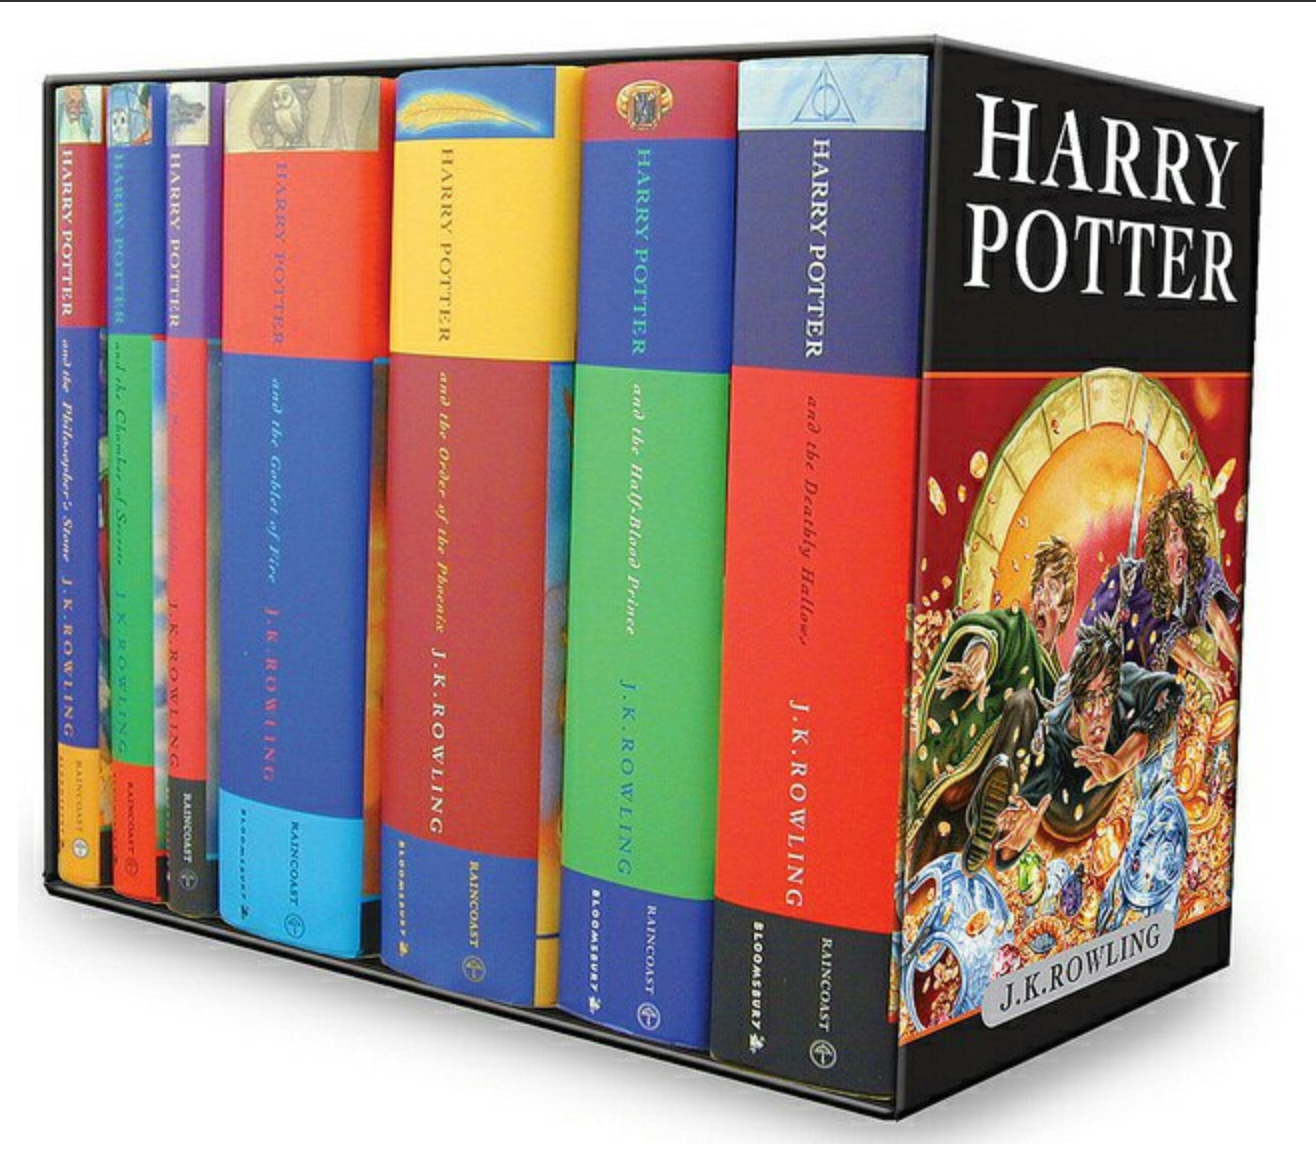 Harry Potter [Complete Collection] BY J K Rowling (Ebook)